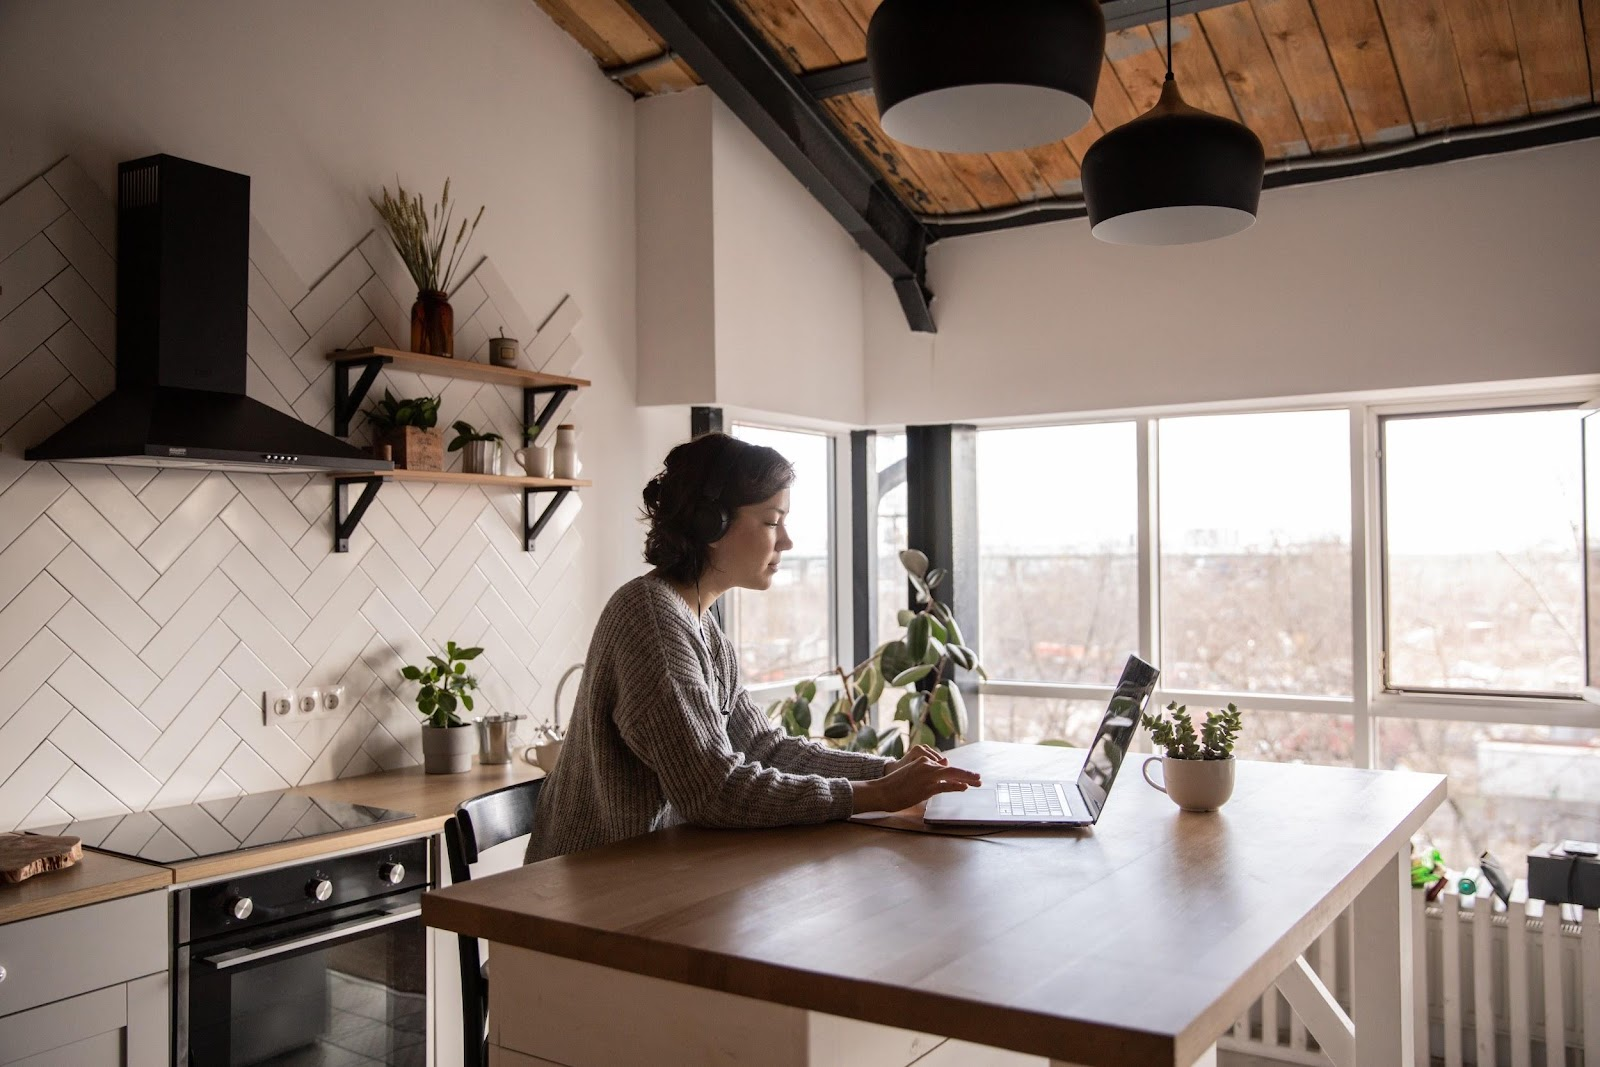 Top Tips for When You Start Working From Home